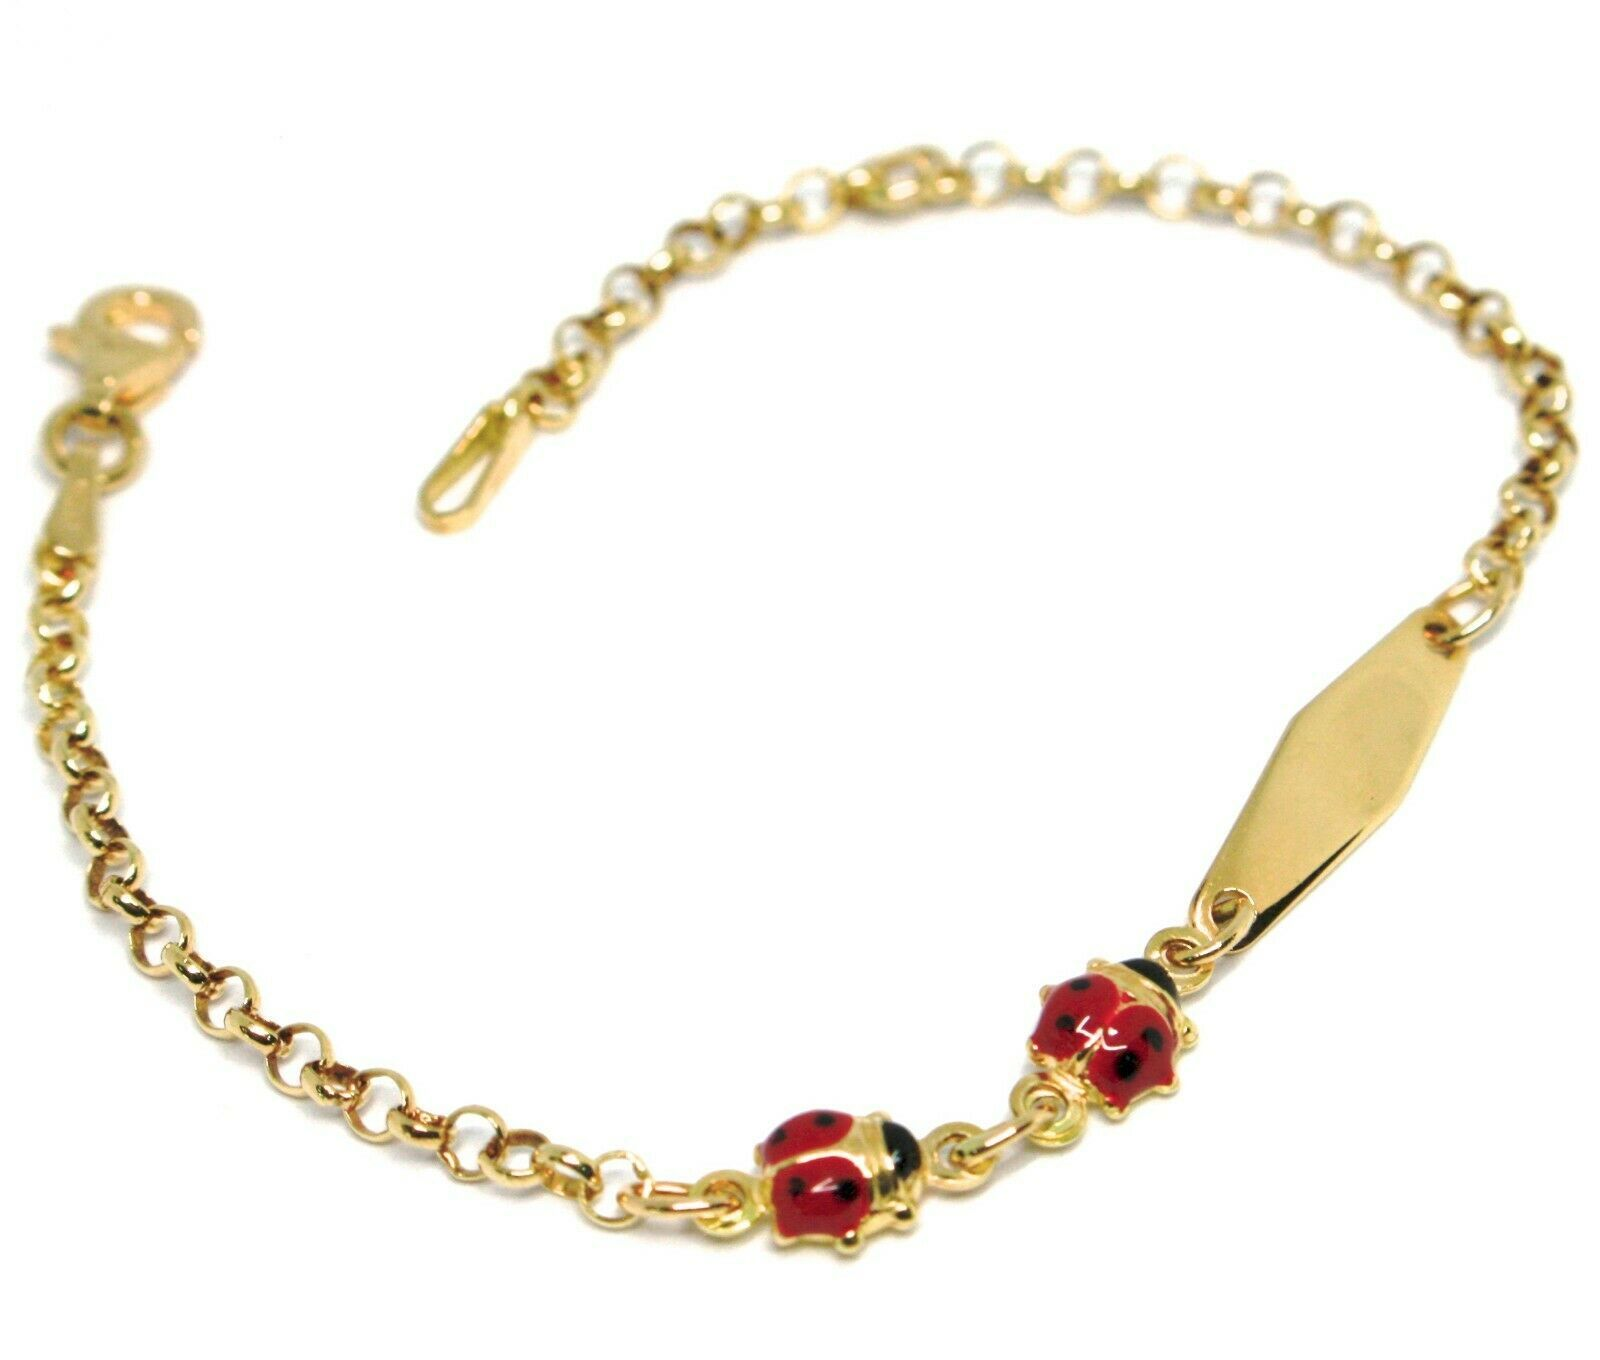 Bracelet Yellow Gold 18K 750, Girls, Ladybirds Enamel, Plate Engraving